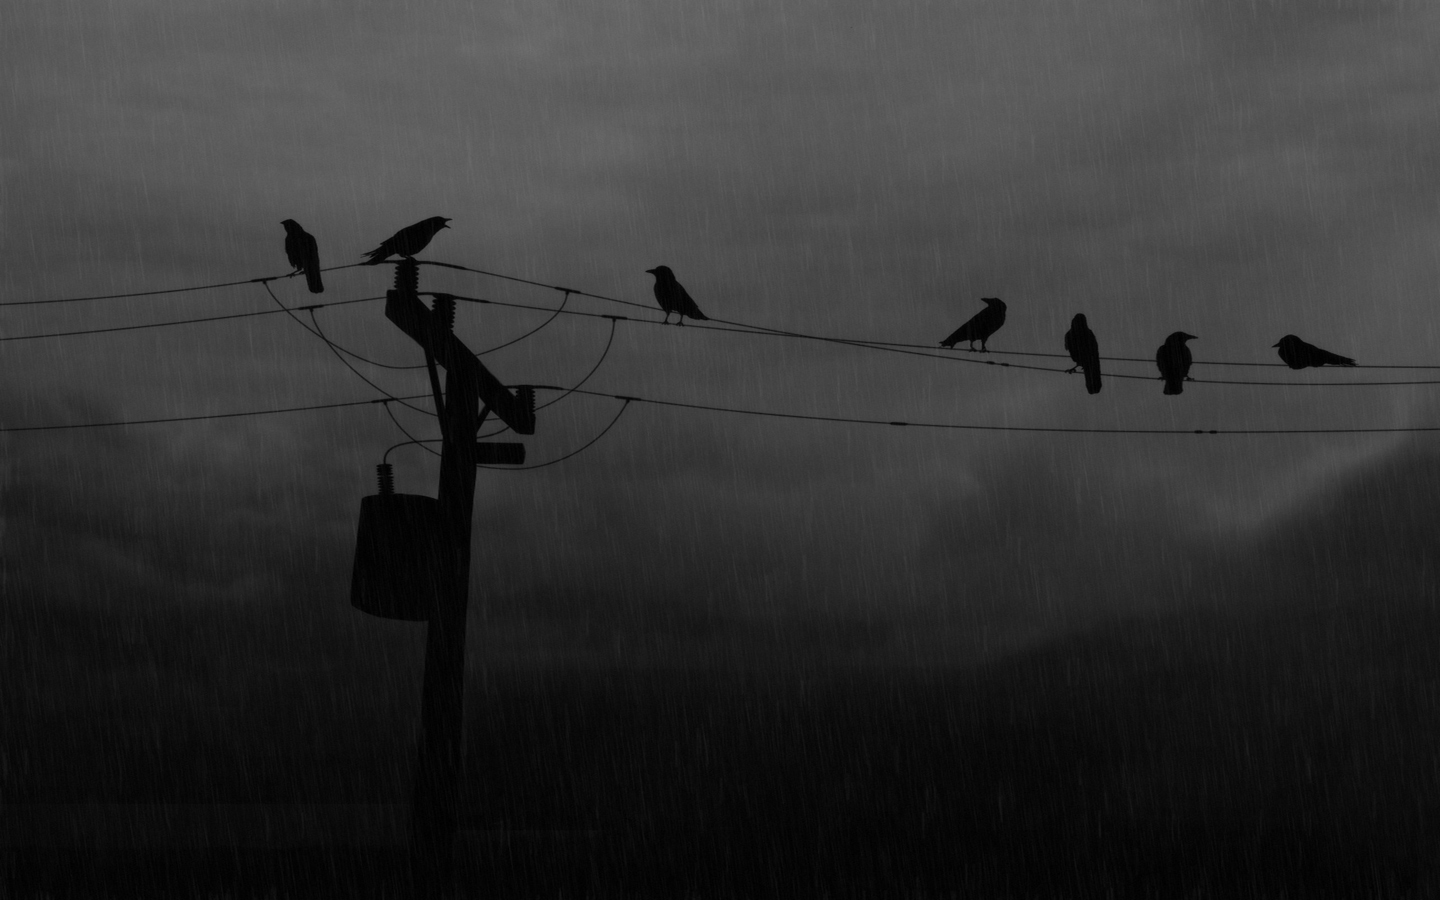 rain power lines crows HD Wallpaper